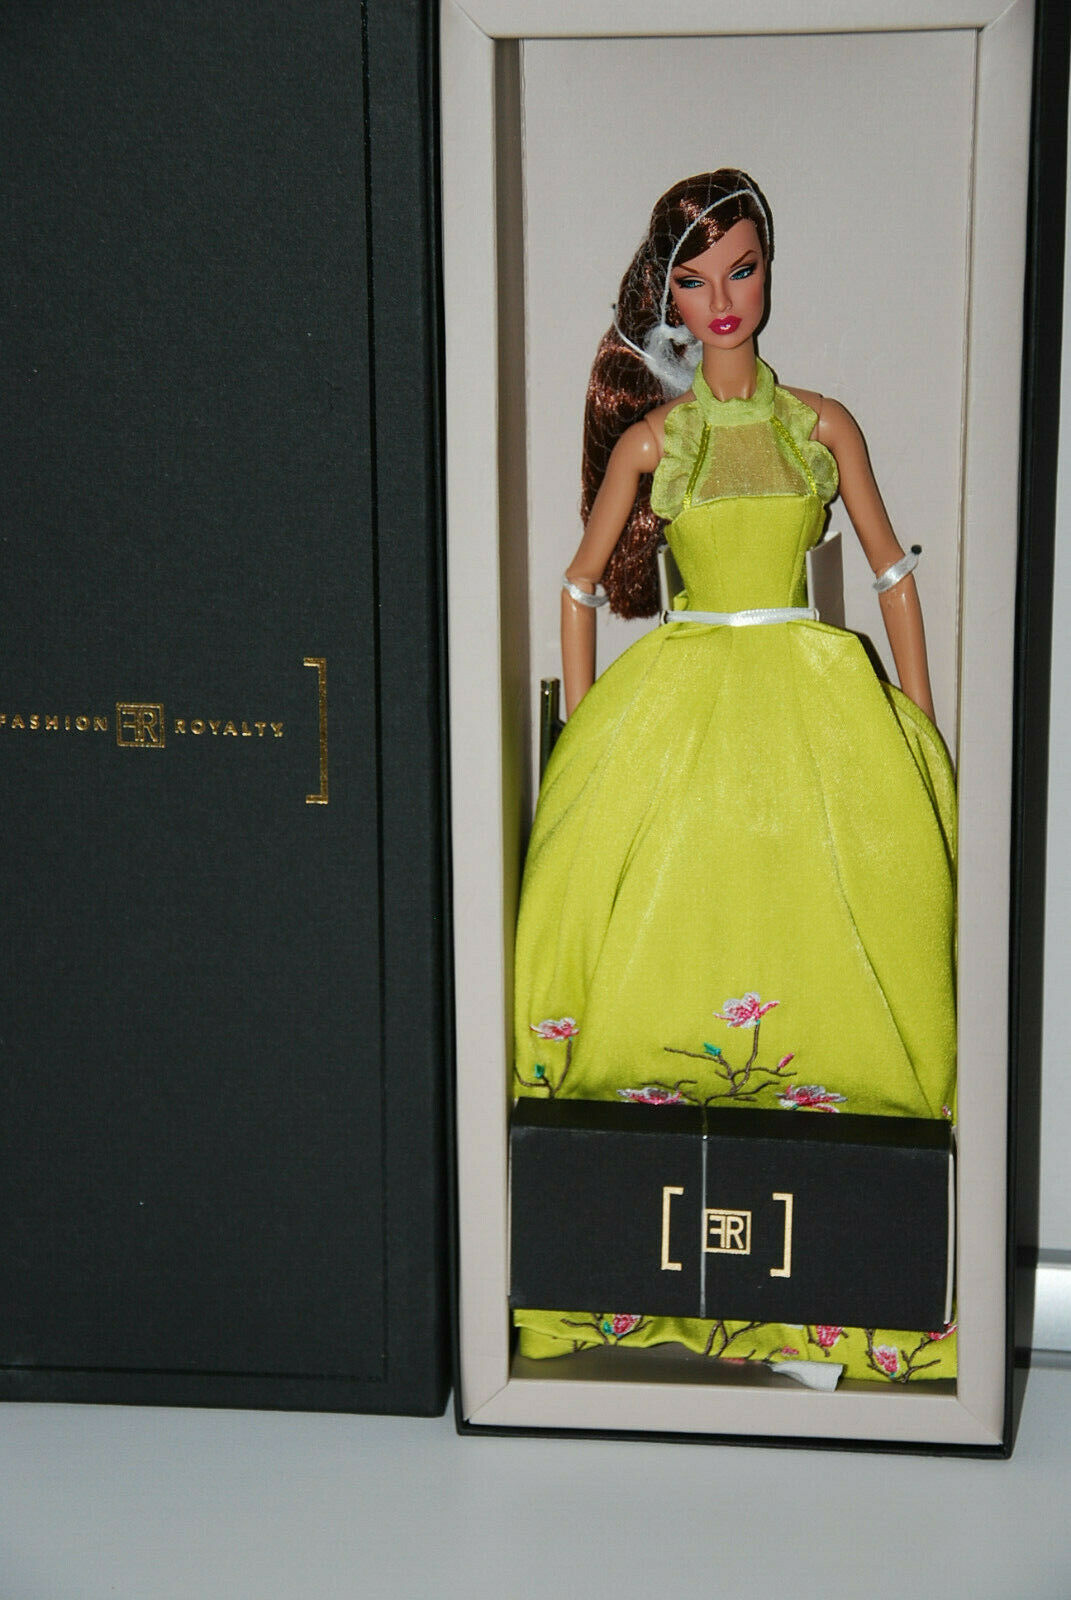 FASHION ROYALTY RUFFLES AND BLOOMS EUGENIA PERRIN-FROST DRESSED DOLL, 91399 NRFB